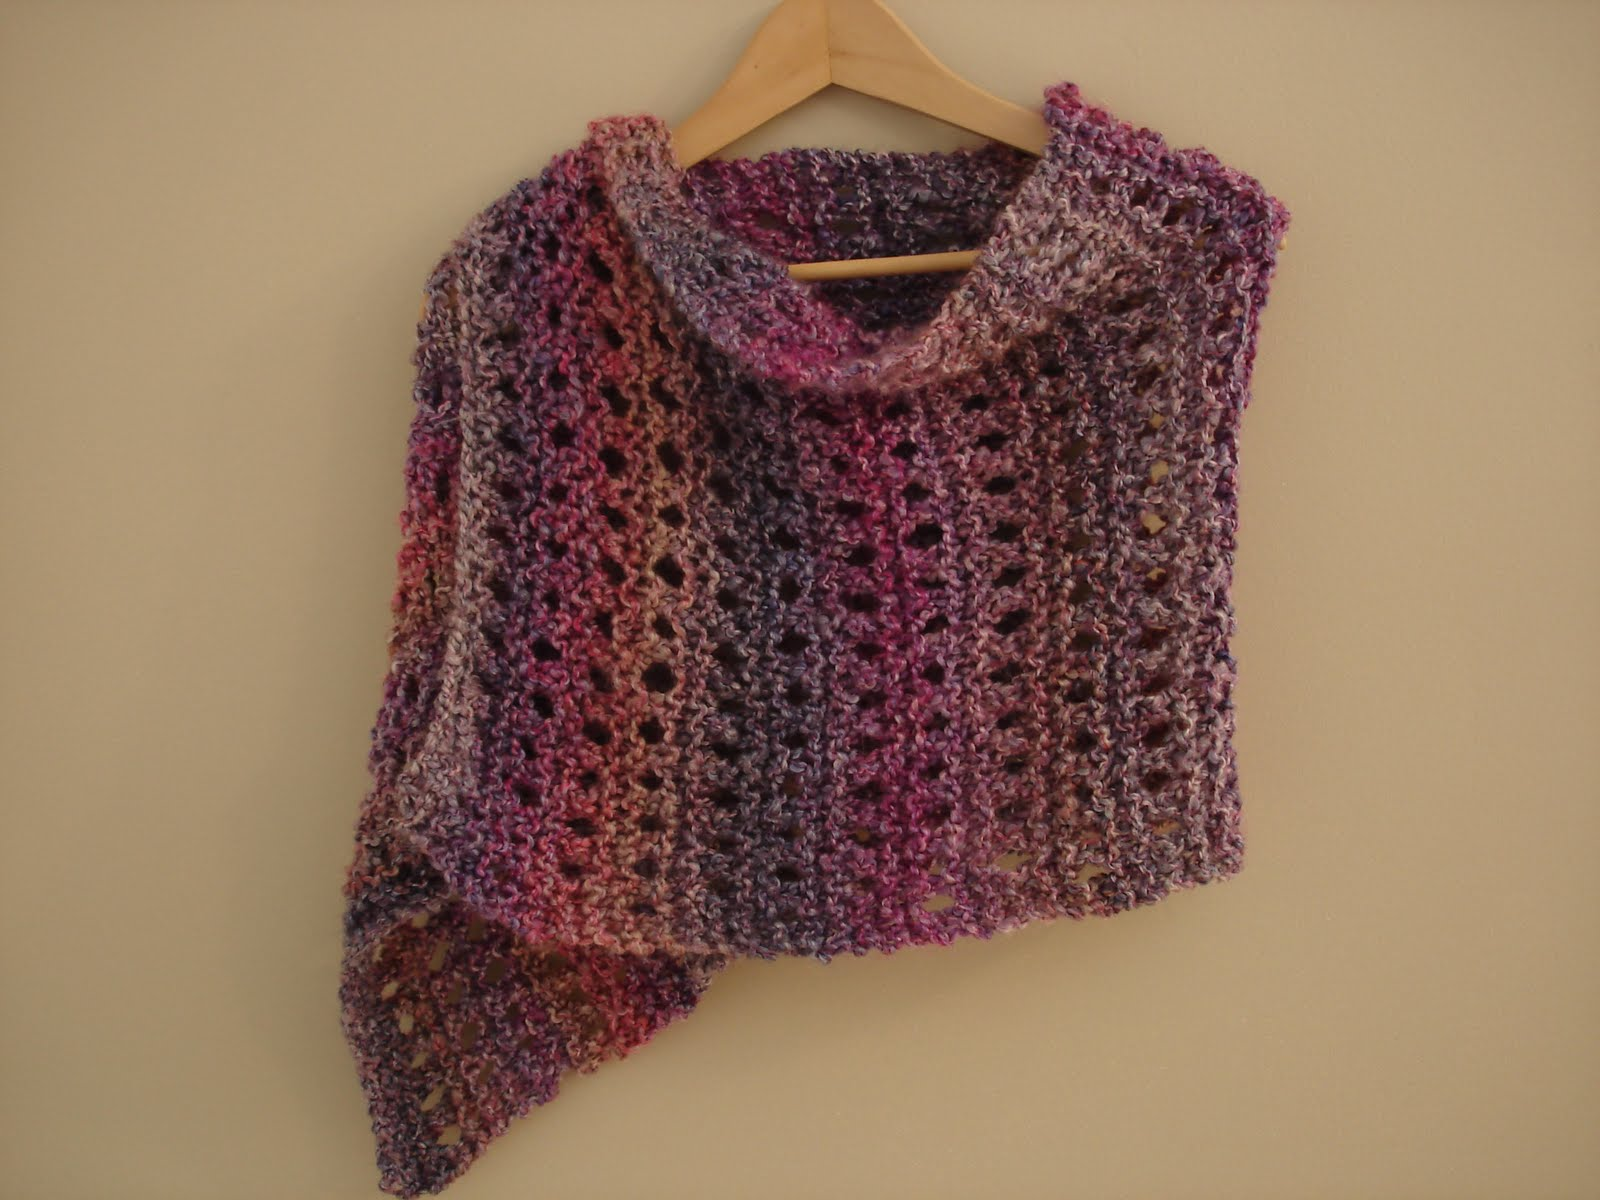 Knitted Shawl Patterns Free : Fiber Flux: Free Knitting Pattern...A Peaceful Shawl!